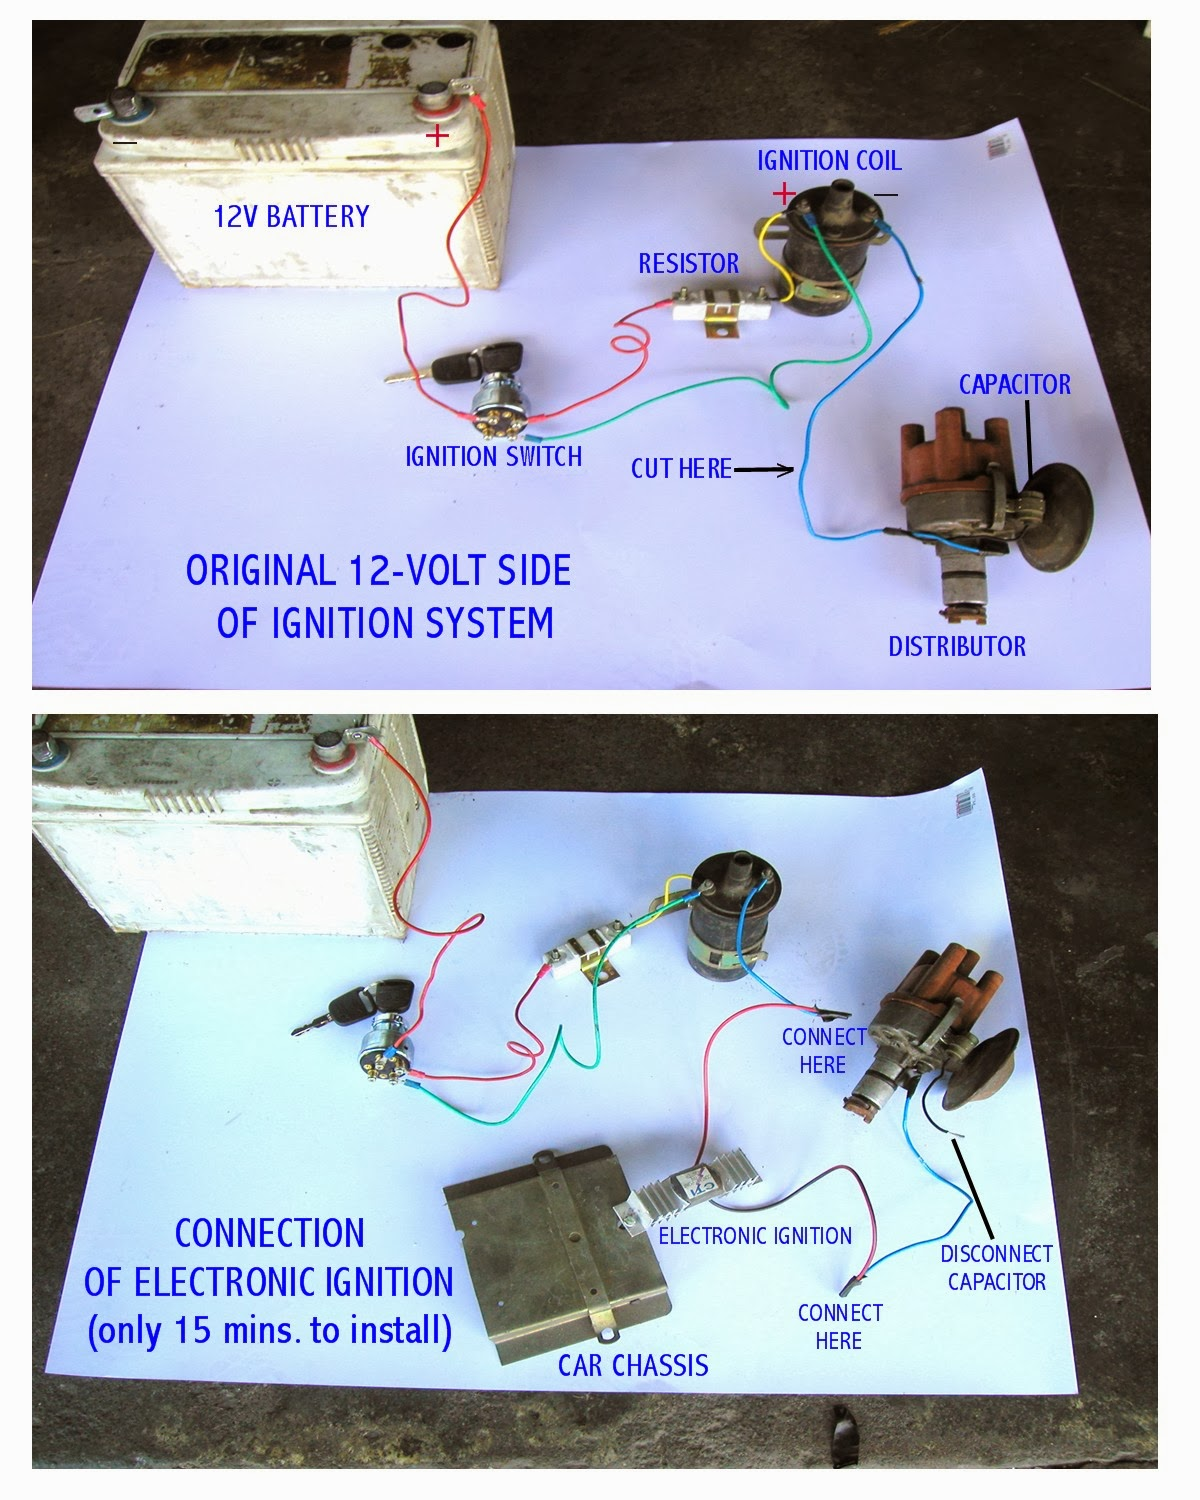 IGNITION+DIAGRAMJPEGRESIZE technology december 2013 toyota tamaraw fx electrical  wiring diagram at cita.asia